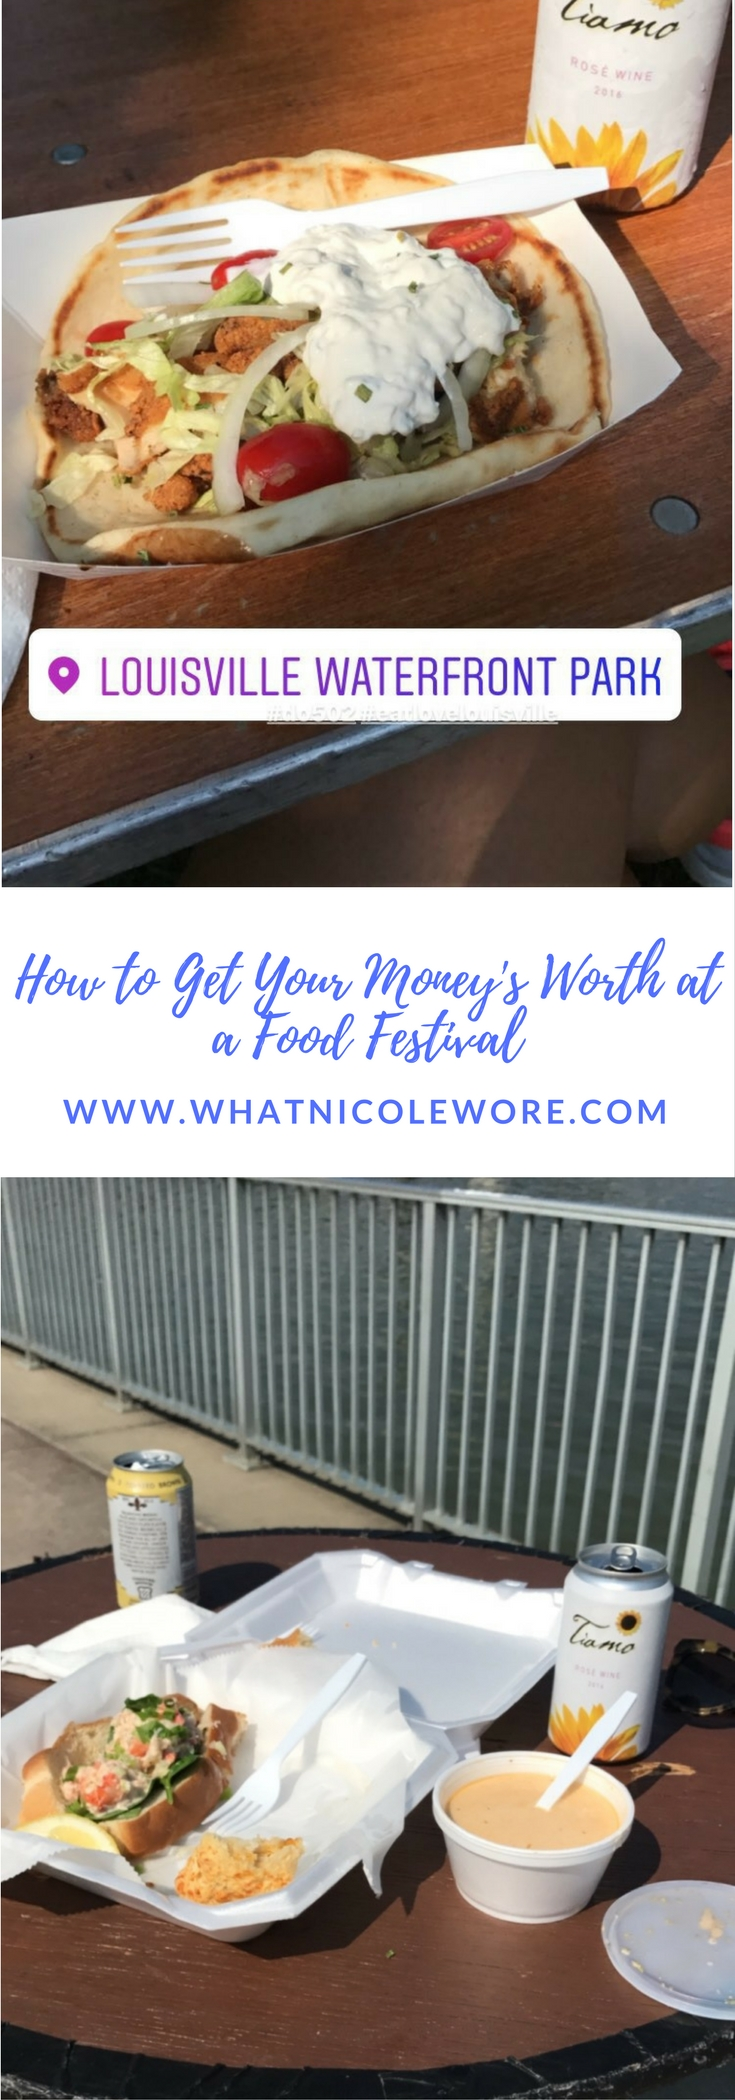 Southern lifestyle blogger shares photos from Louisville Craft Beer & Food Truck Festival and how to dominate a food festival. // pollo louisville, longshot lobster, how to dominate a food festival, food truck festivals of america